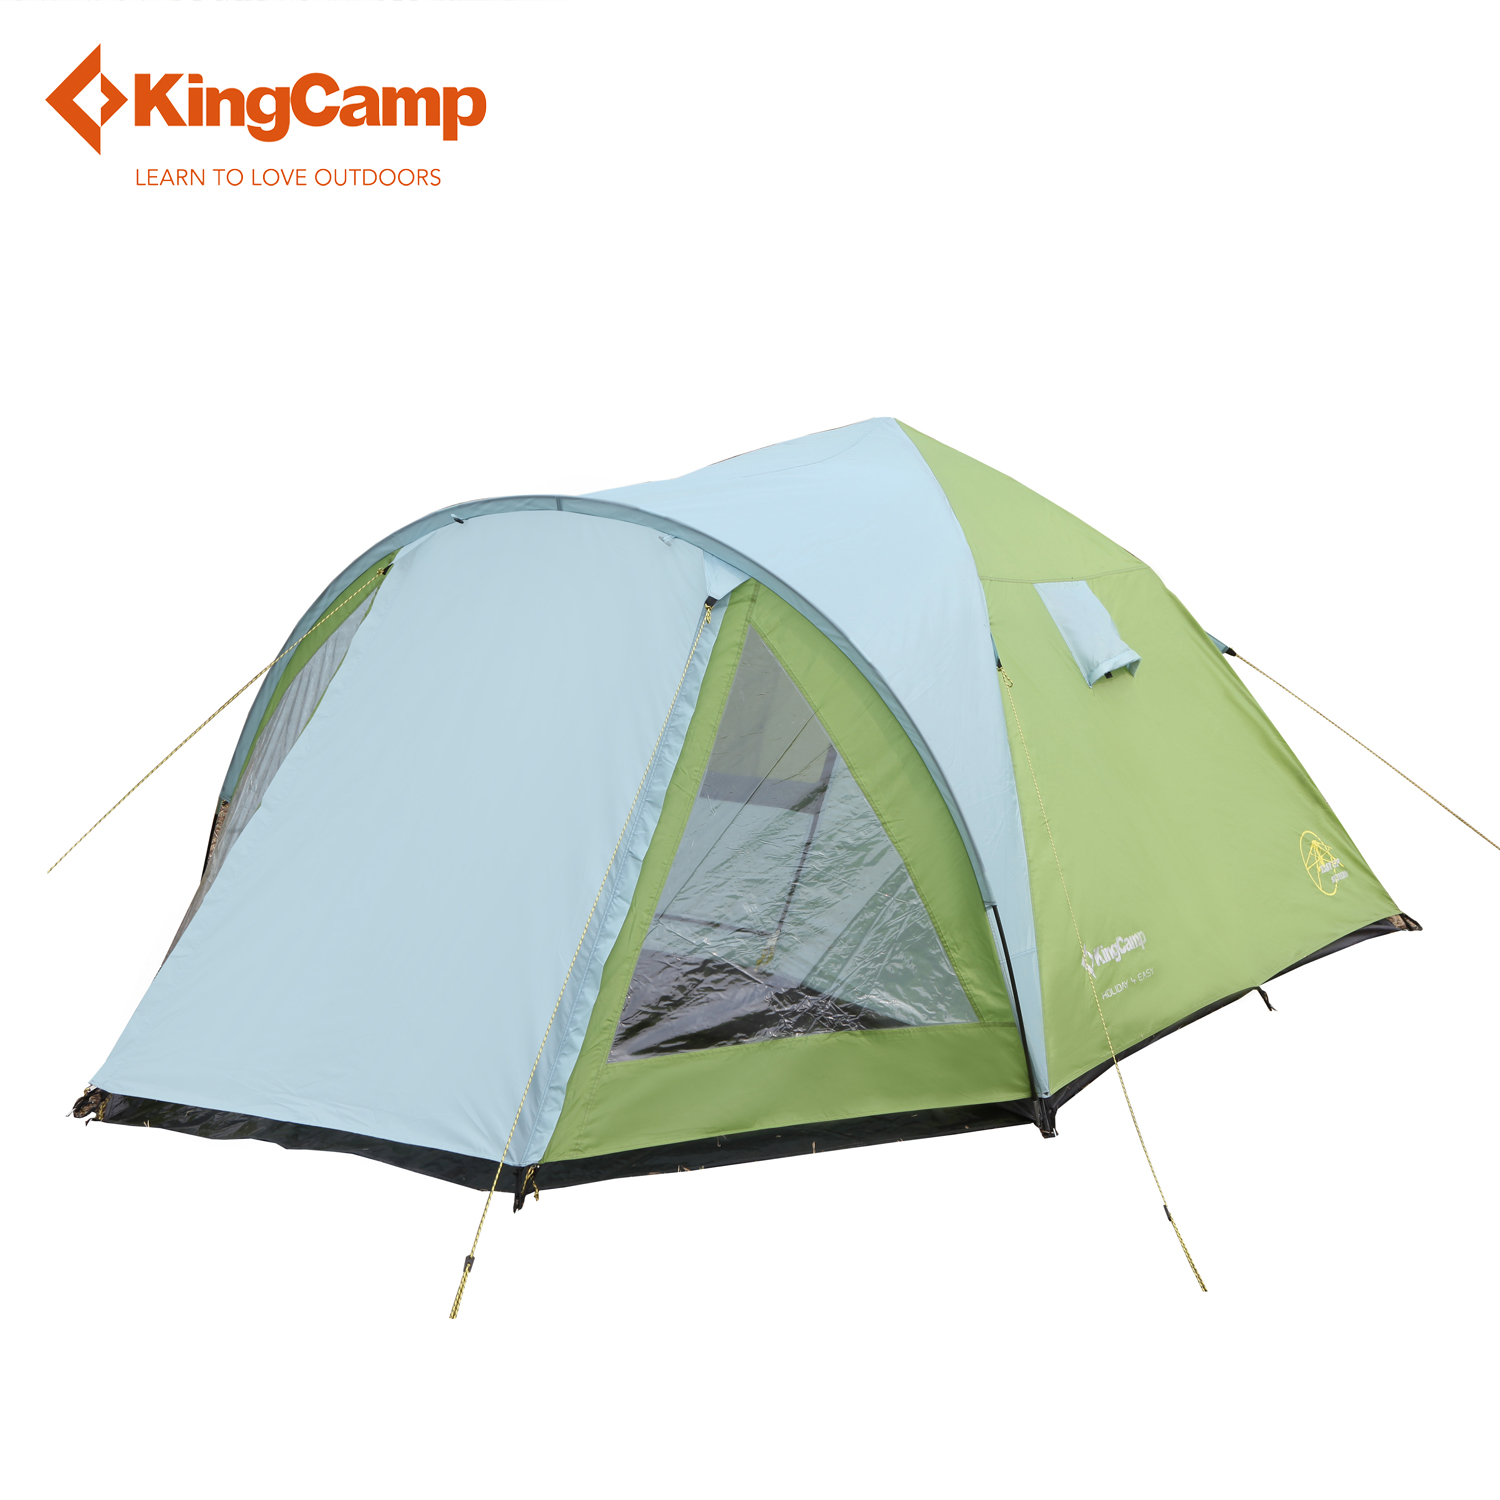 KingCamp Double-layers Camping Tent with Screen Room 4 Person 3-Season Waterproof Windyproof Pop-up Tent for Family Holiday kingcamp camping tent waterproof brand windproof bari fire resistant 4 person 3 season outdoor tent for family camping